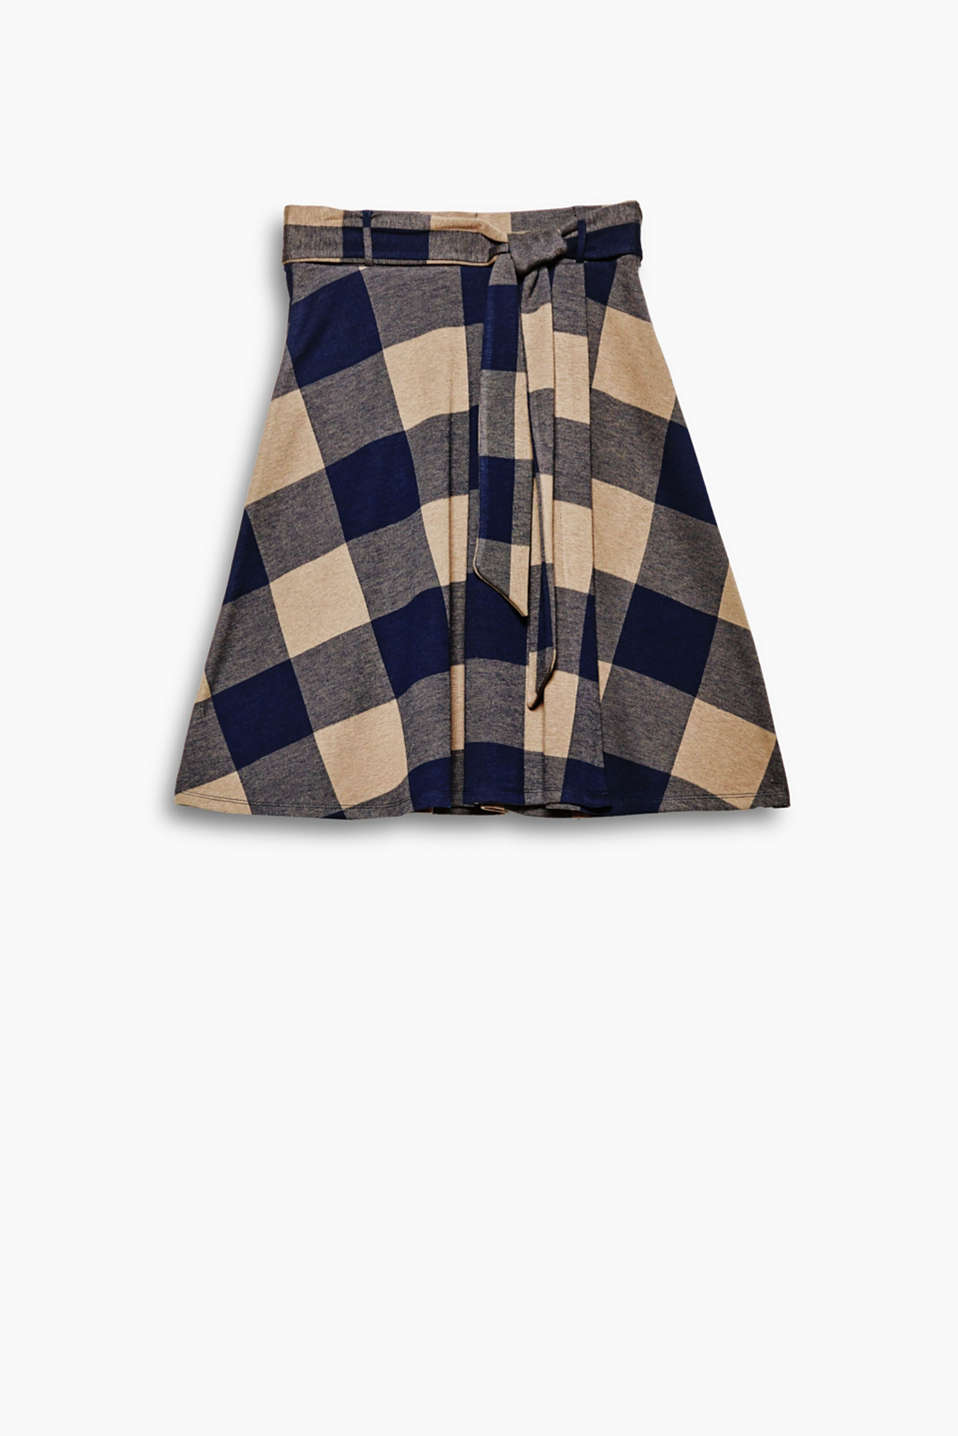 This swirling flannel skirt is perfect for feminine fashion looks with its XXL checks and wrap-over effect!